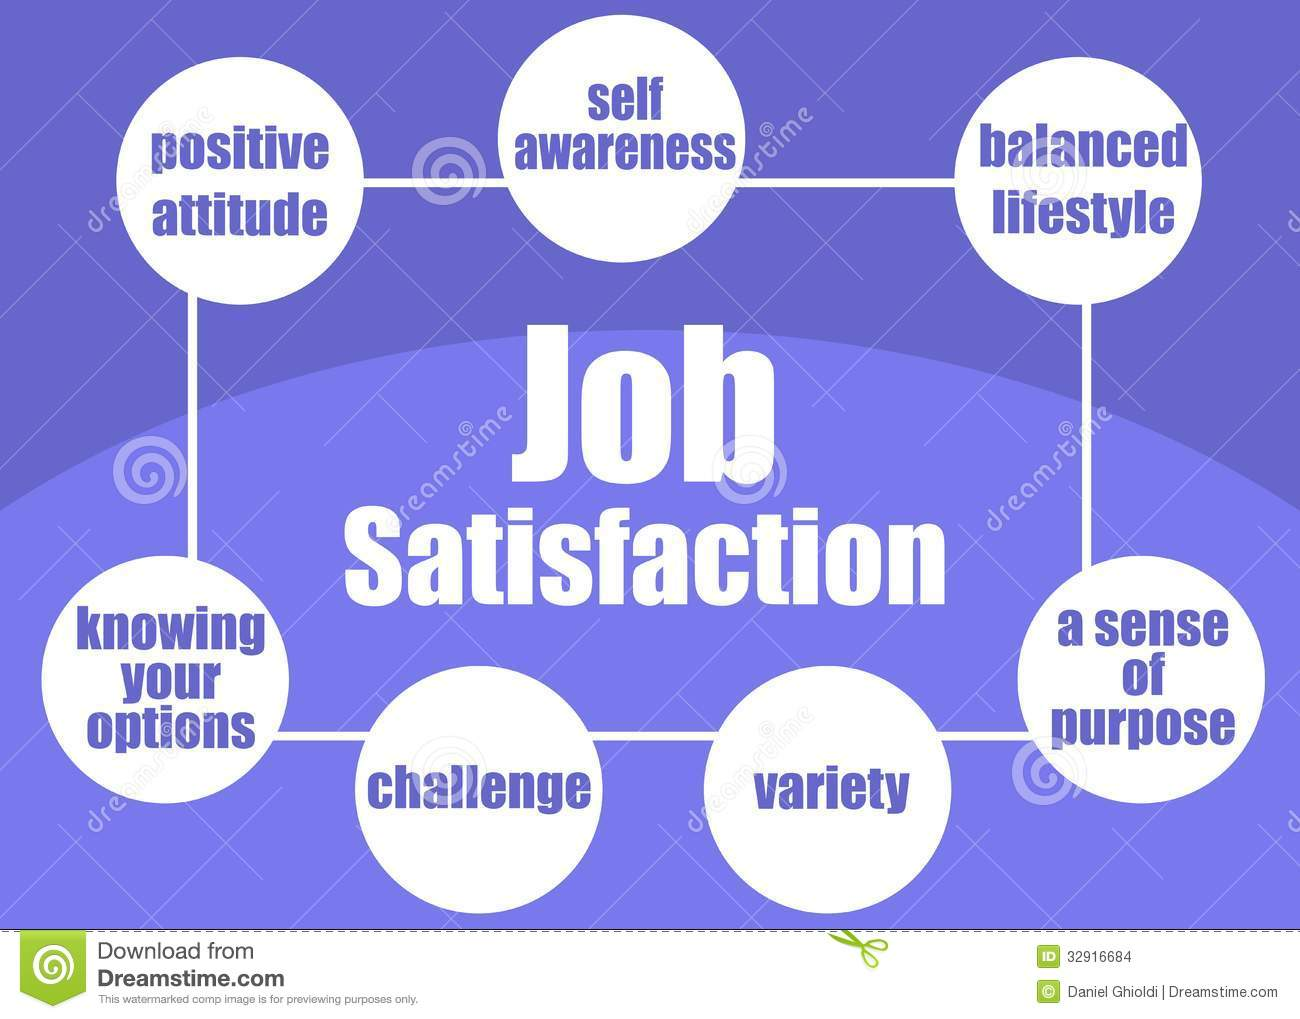 employee attitudes and job satisfaction. human resource management